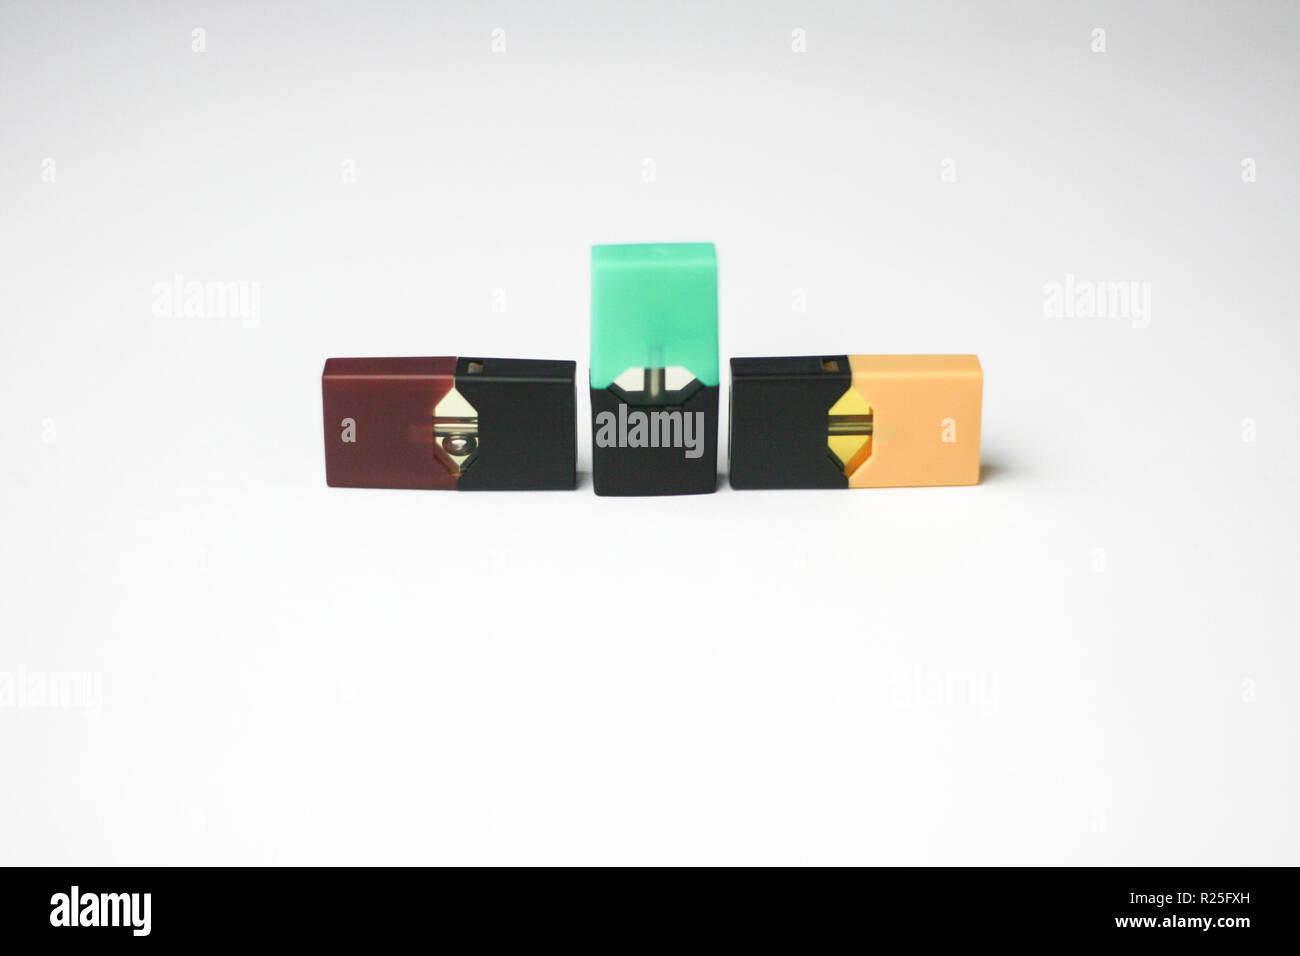 JUUL E-Cigarette and Flavor Pods on white background Stock